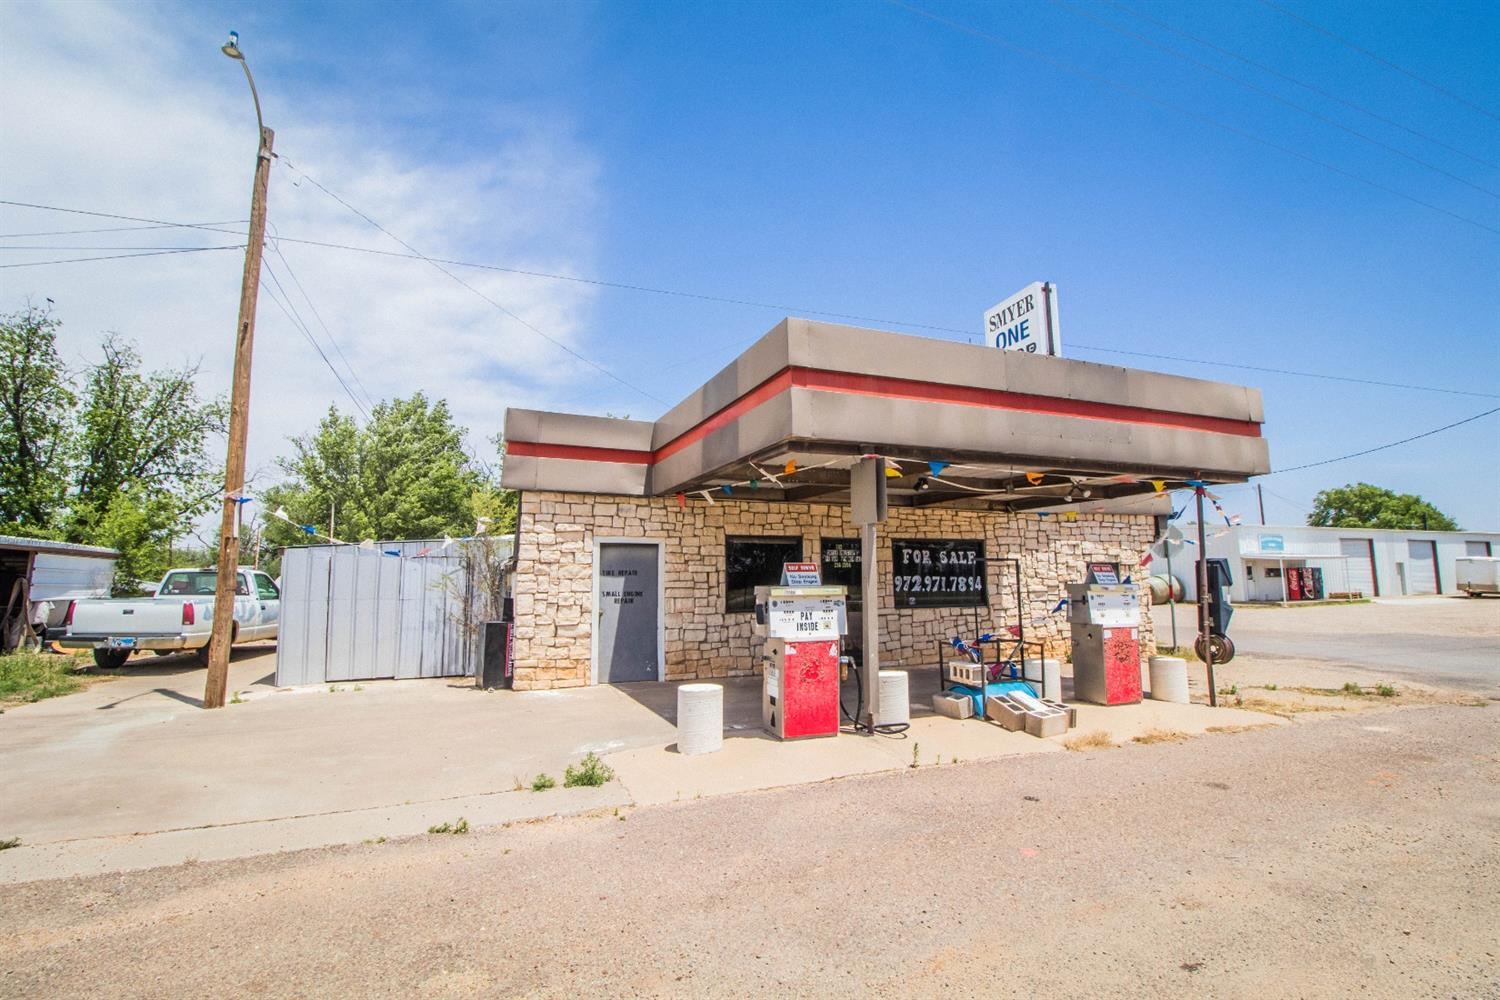 Great investment opportunity to own an established gas station on Hwy 114 in Smyer, between Lubbock and Levelland. This gas station has above ground tanks, functioning pumps, vehicle repair garage, grocery section and storage.